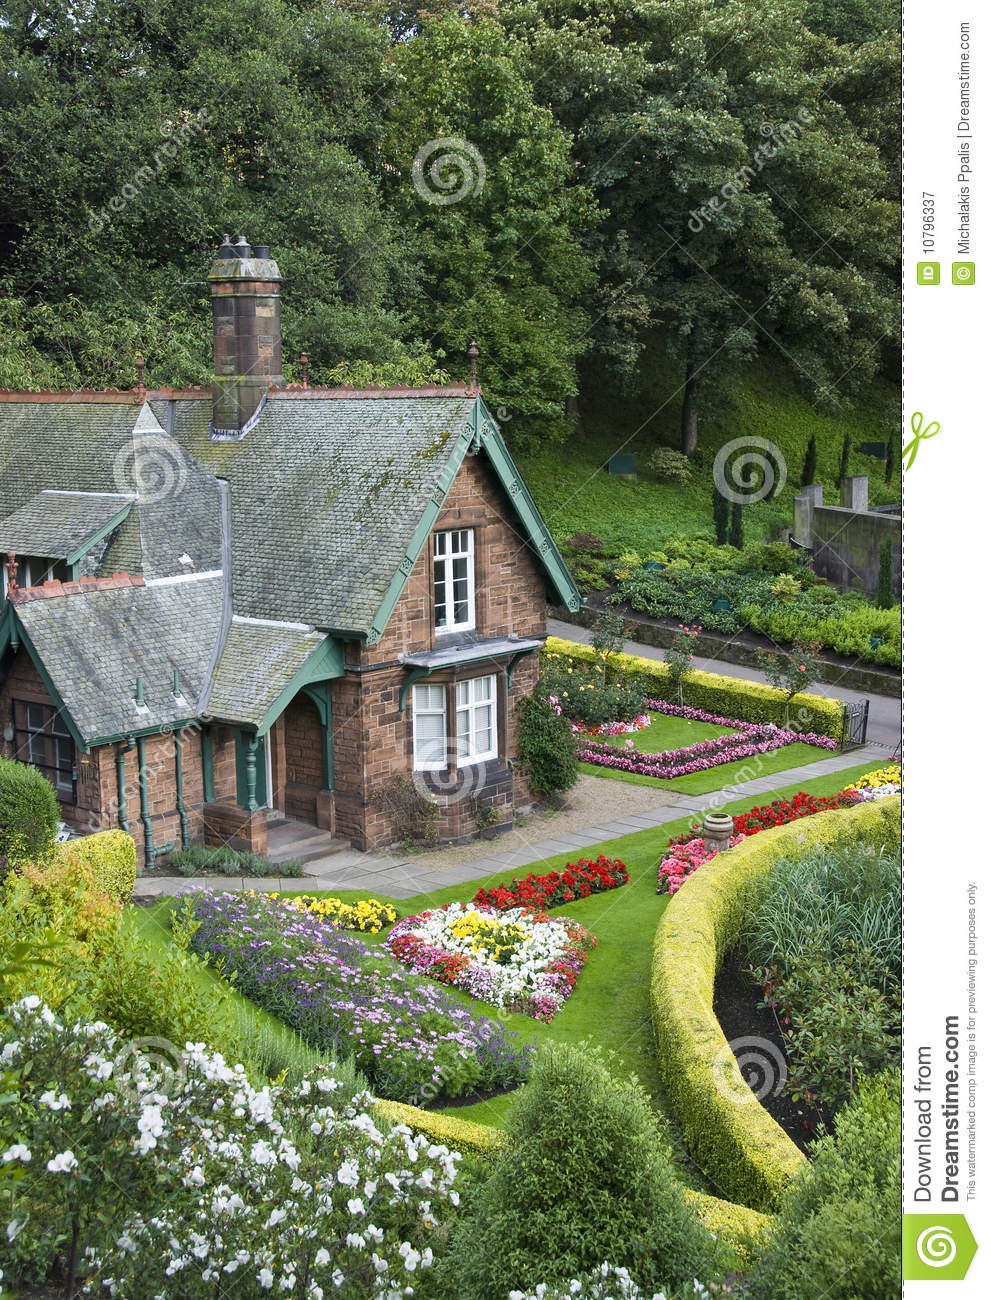 Superb Small House With Garden Royalty Free Stock Photography Image Largest Home Design Picture Inspirations Pitcheantrous